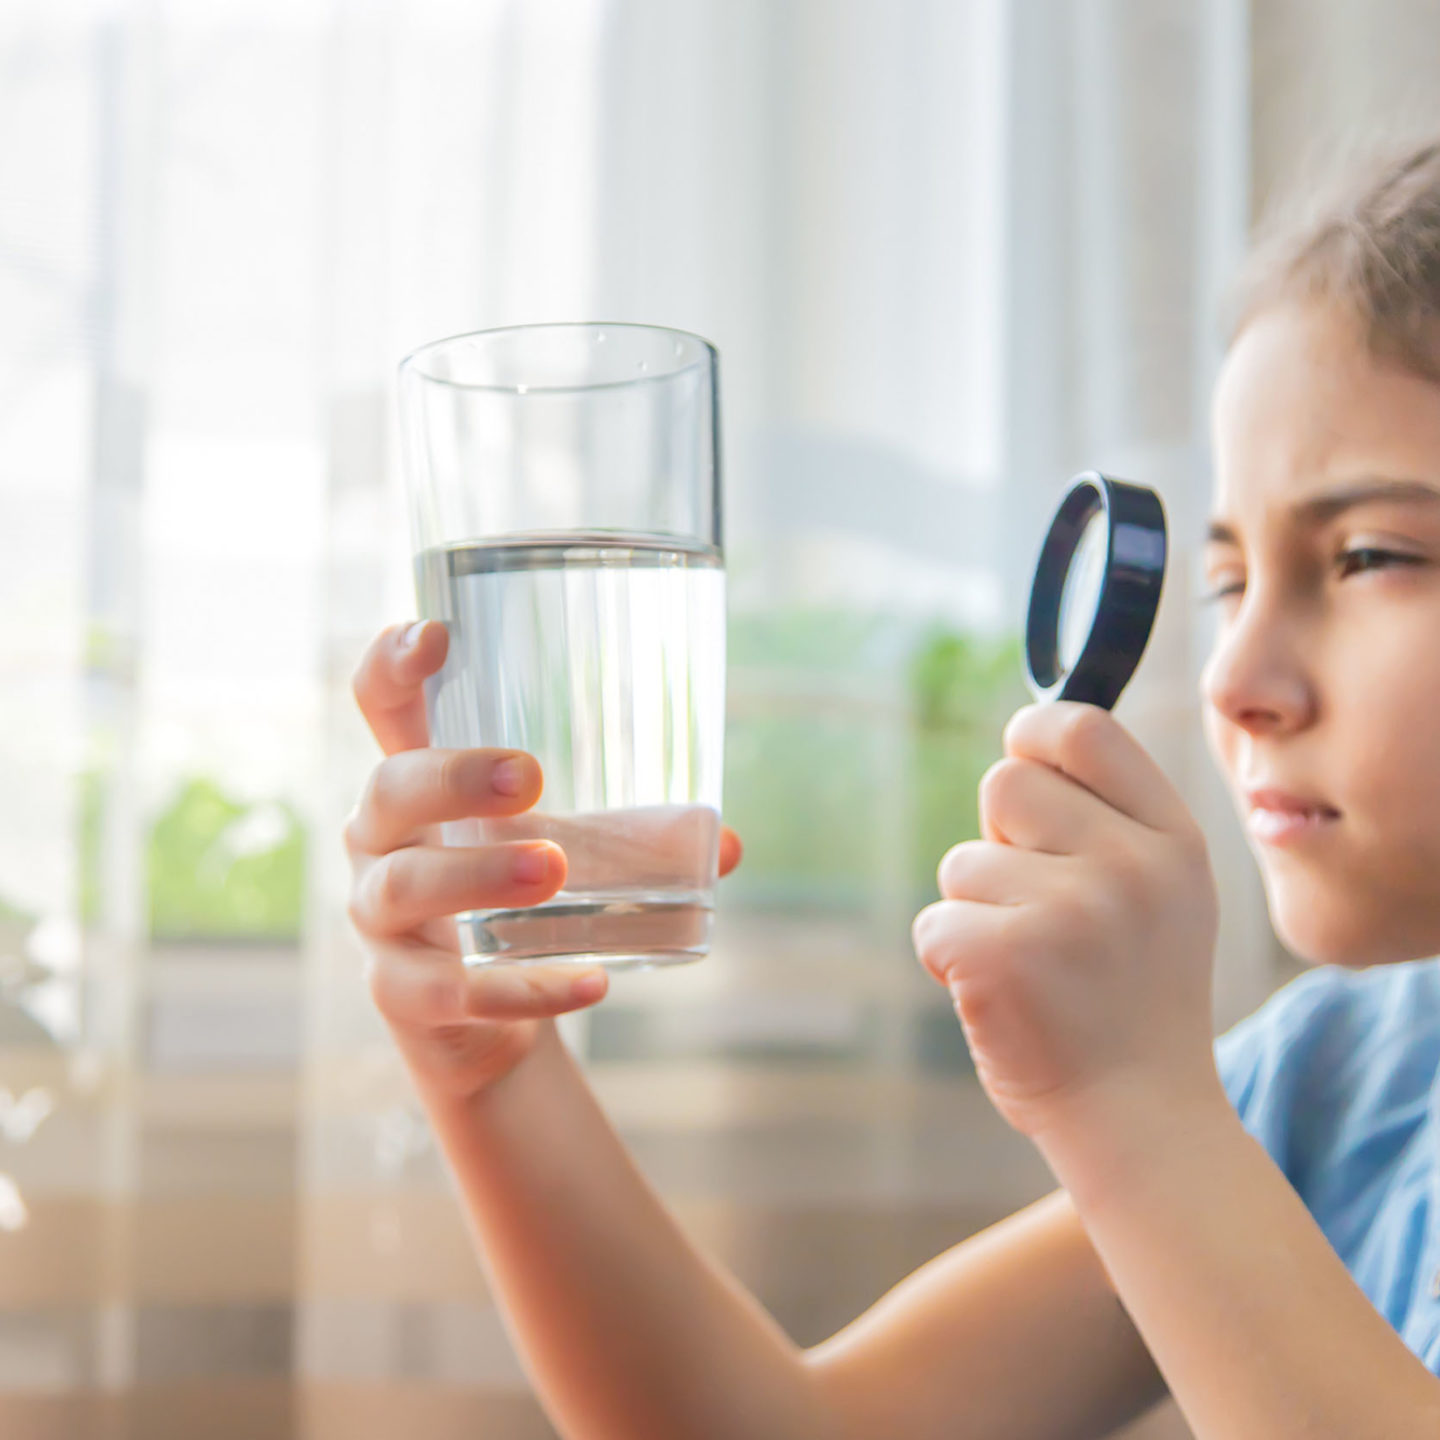 Child inspecting water glass - Prioritizing Children's Health: Revisions to EPA Rules and NSF Standards Help Reduce Lead in Drinking Water | NSF International